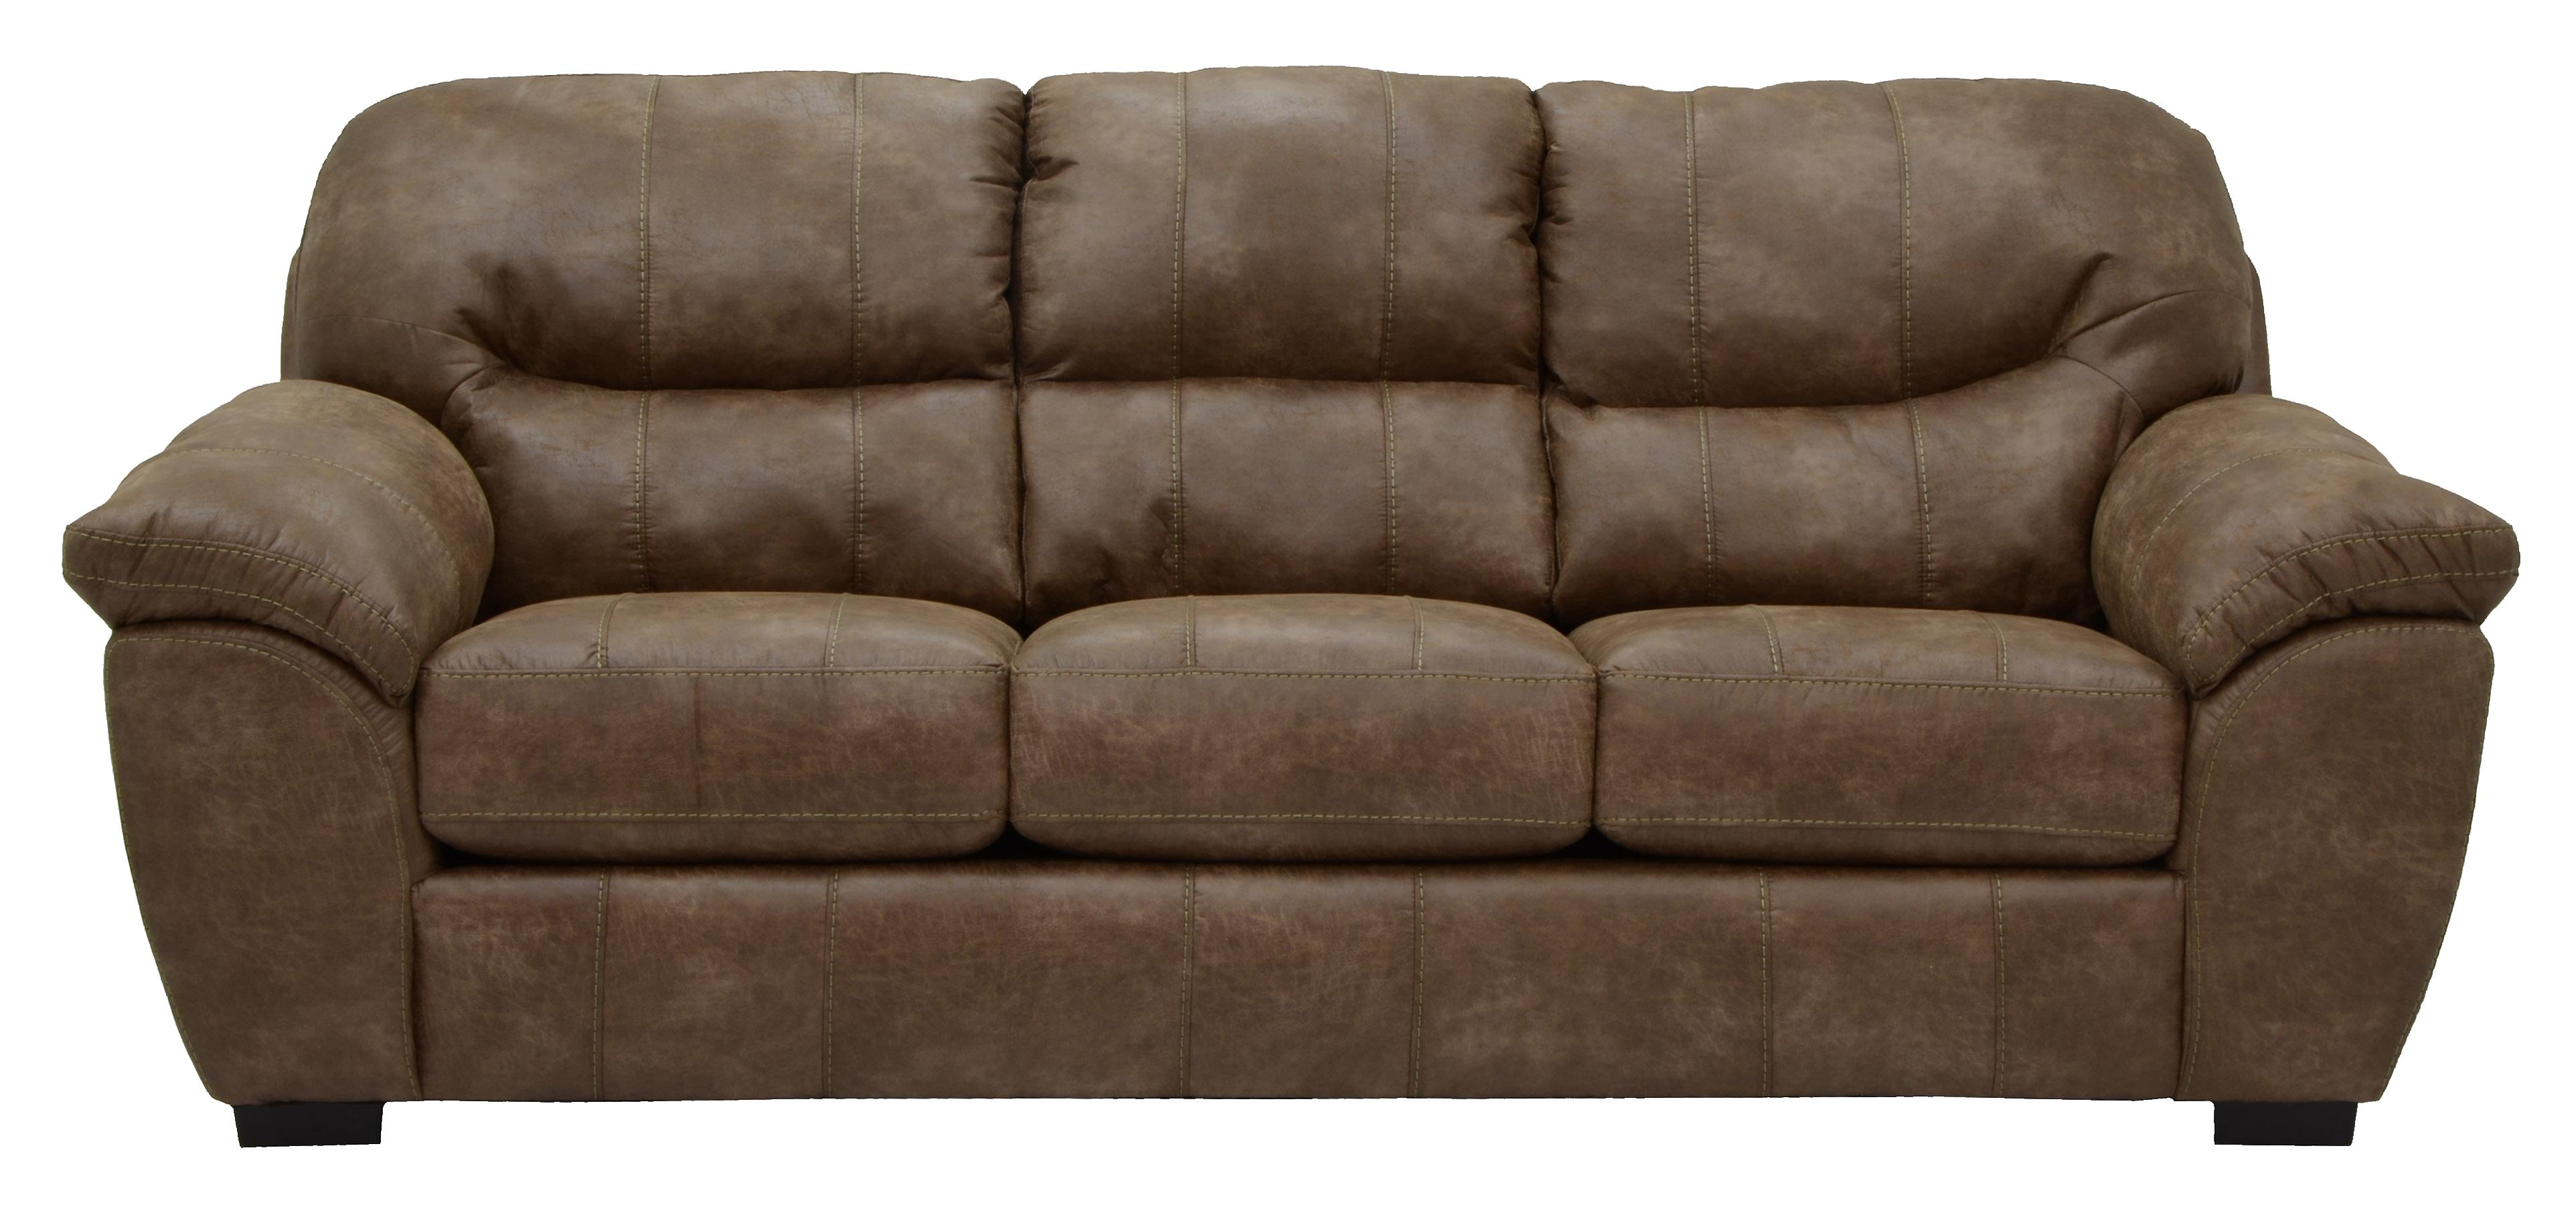 Grant Sleeper Sofa by Jackson Furniture at Rooms for Less